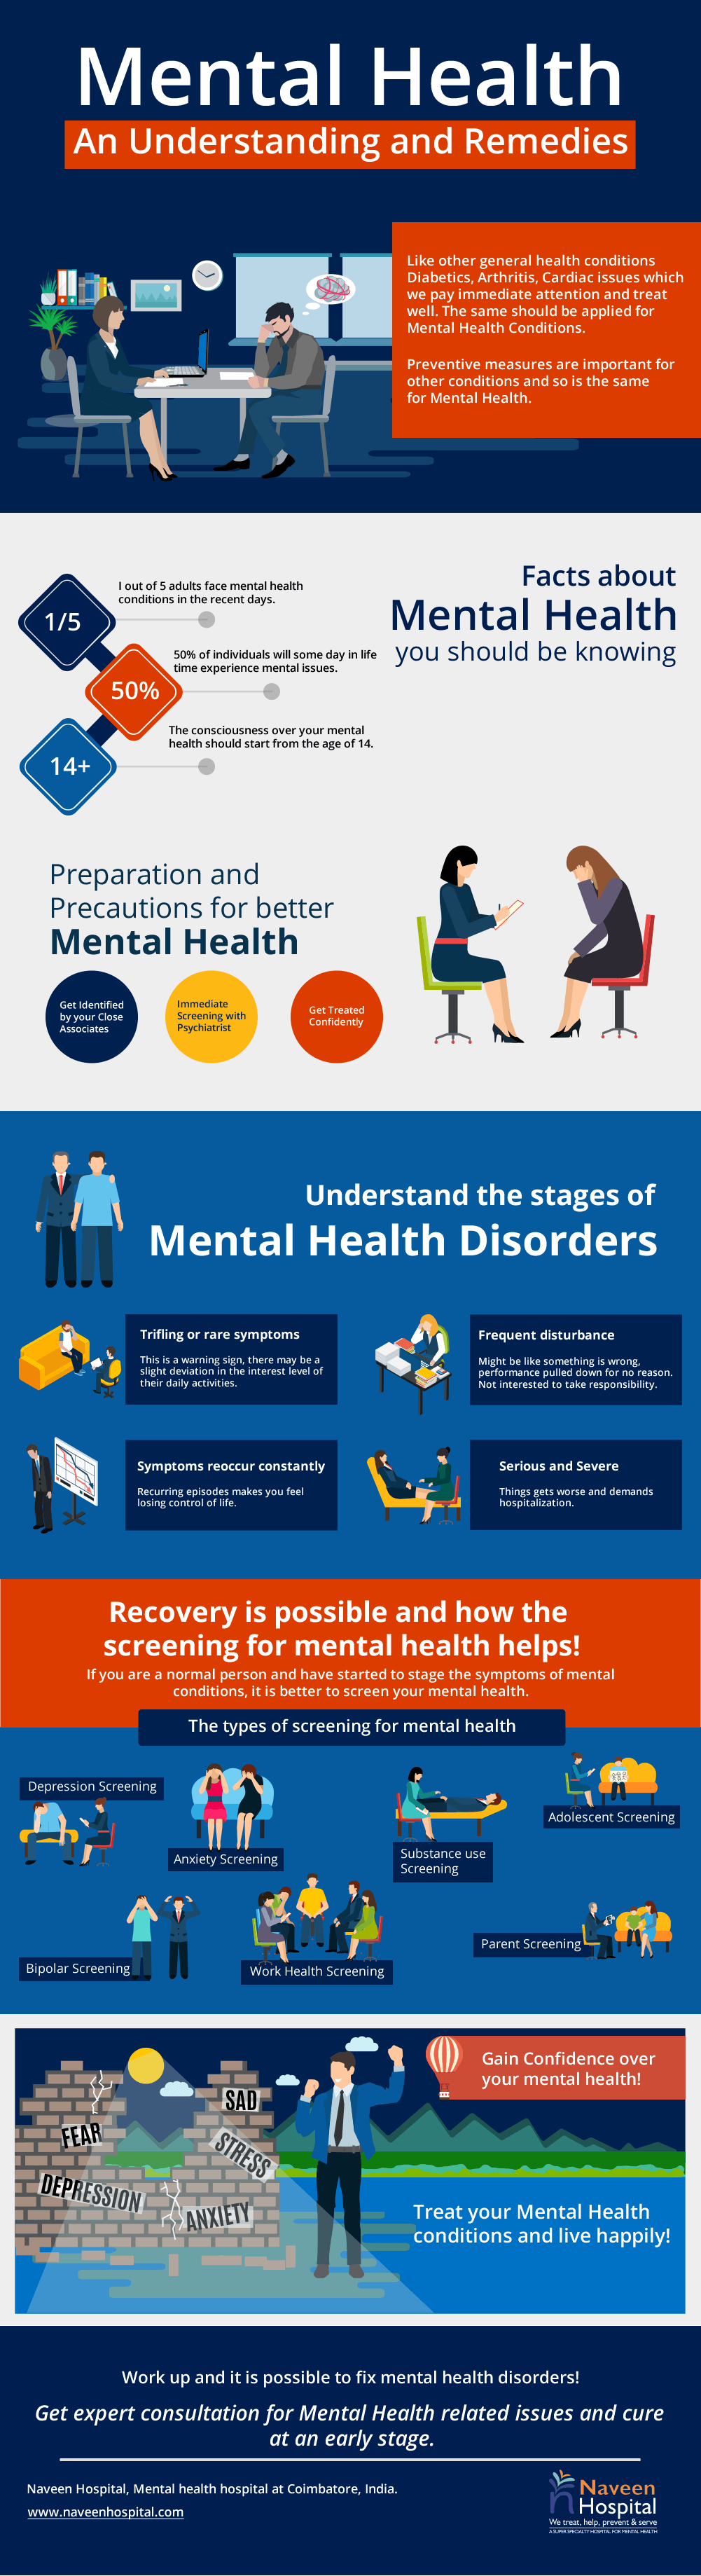 Mental Health: An Understanding and Remedies Infographic